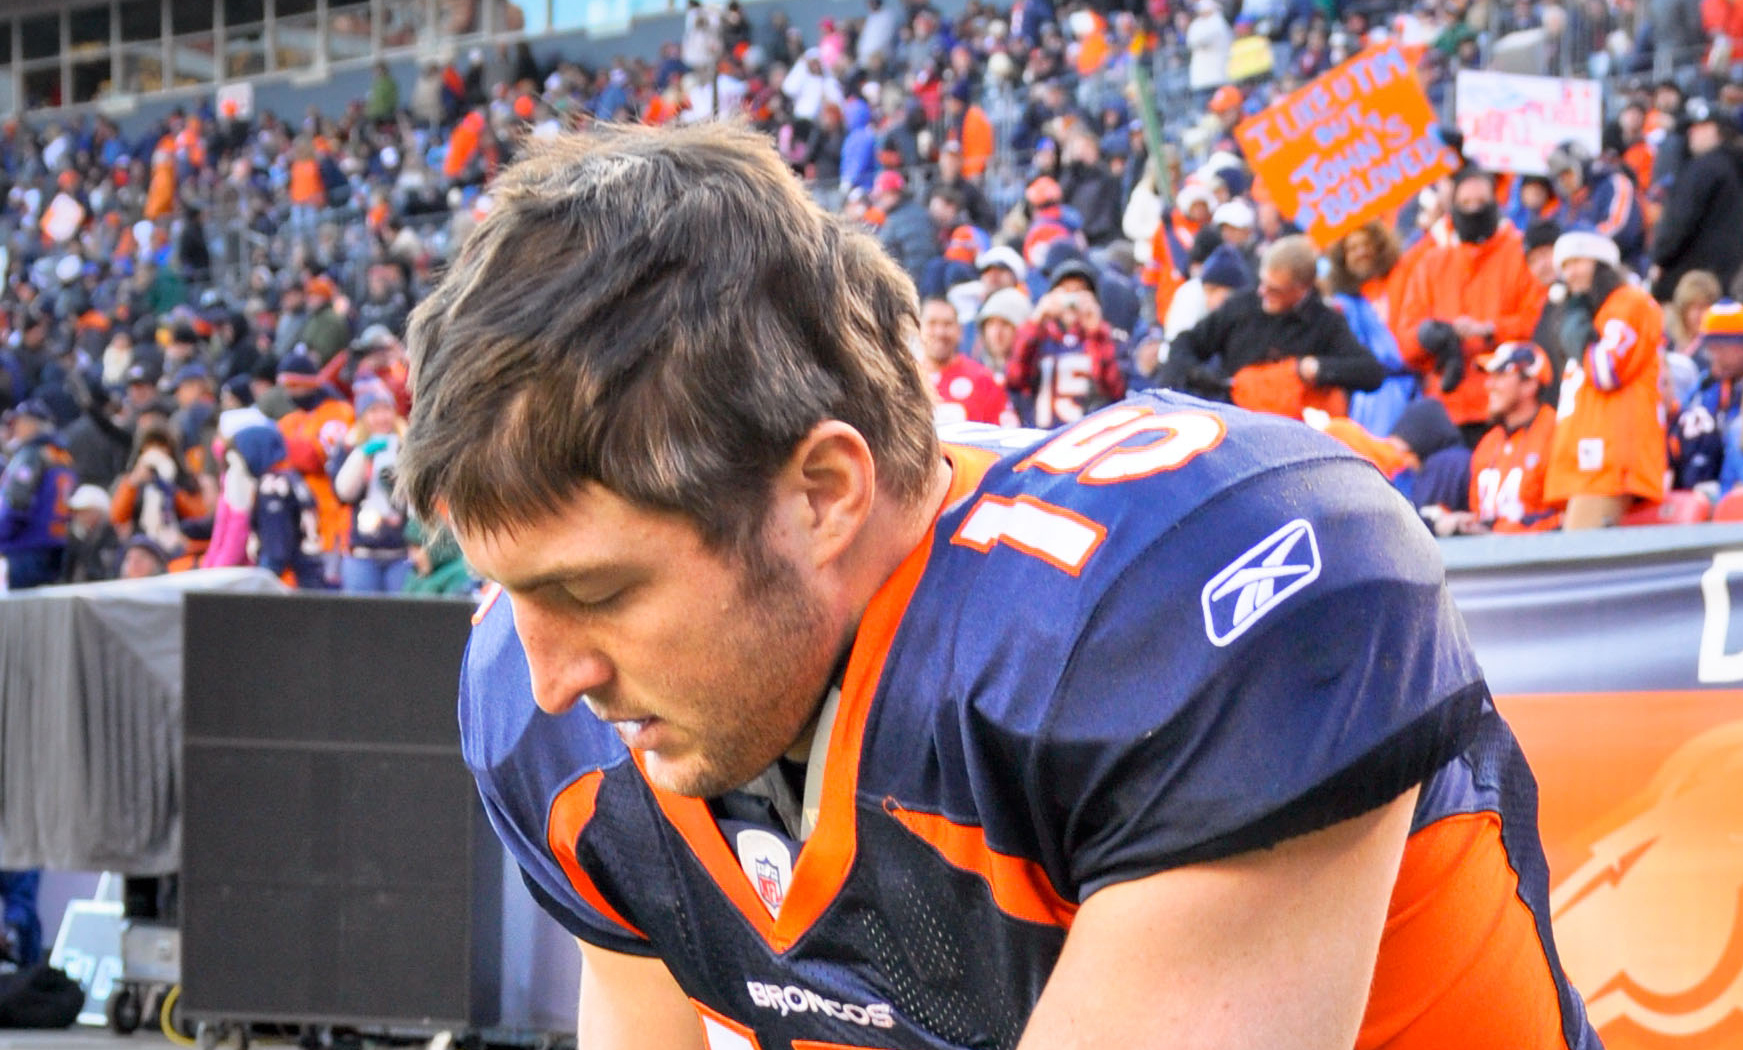 How Should We Respond to Christians like Tim Tebow?